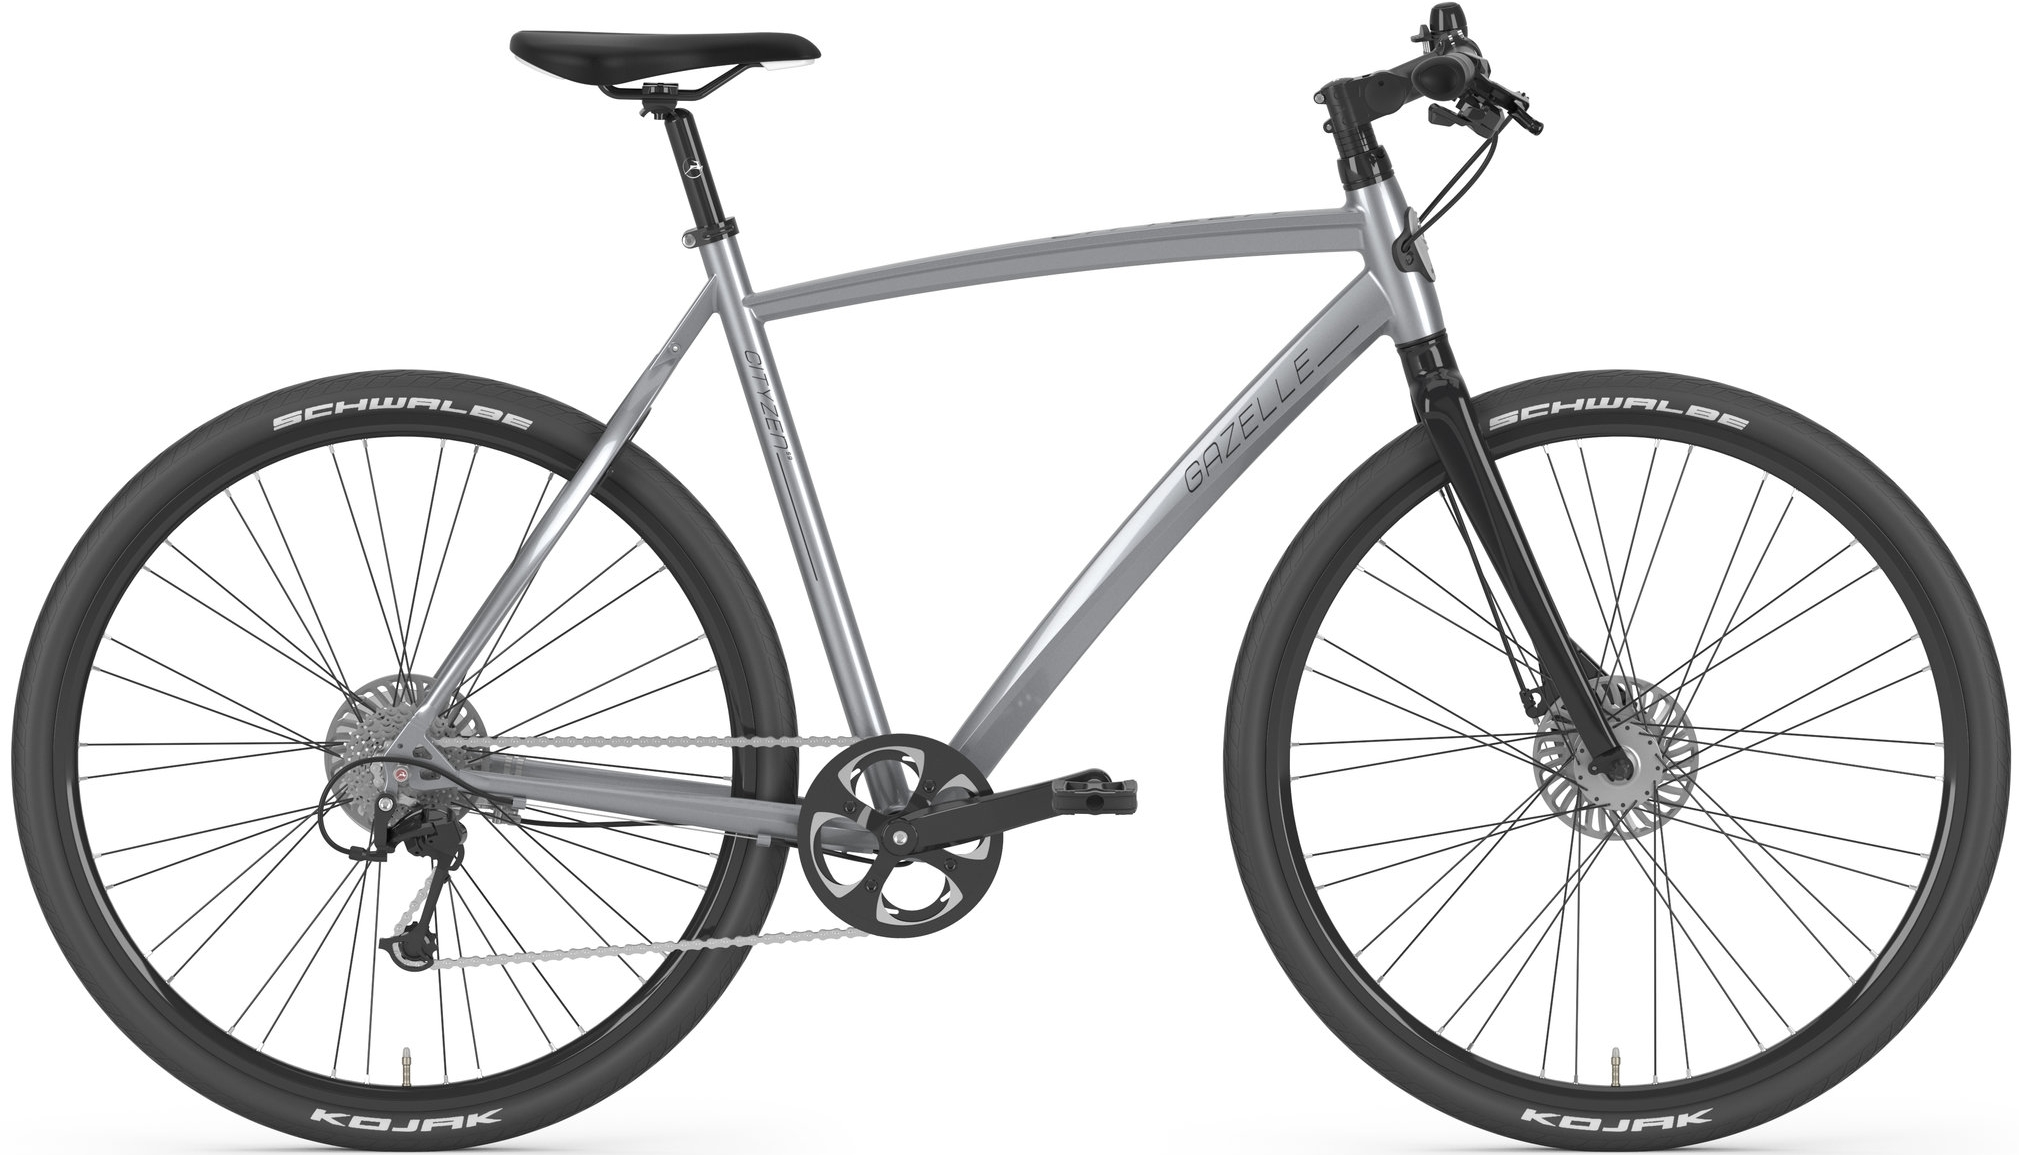 CityZen S9 £629 Royal silver - Now £440! (53cm Only)